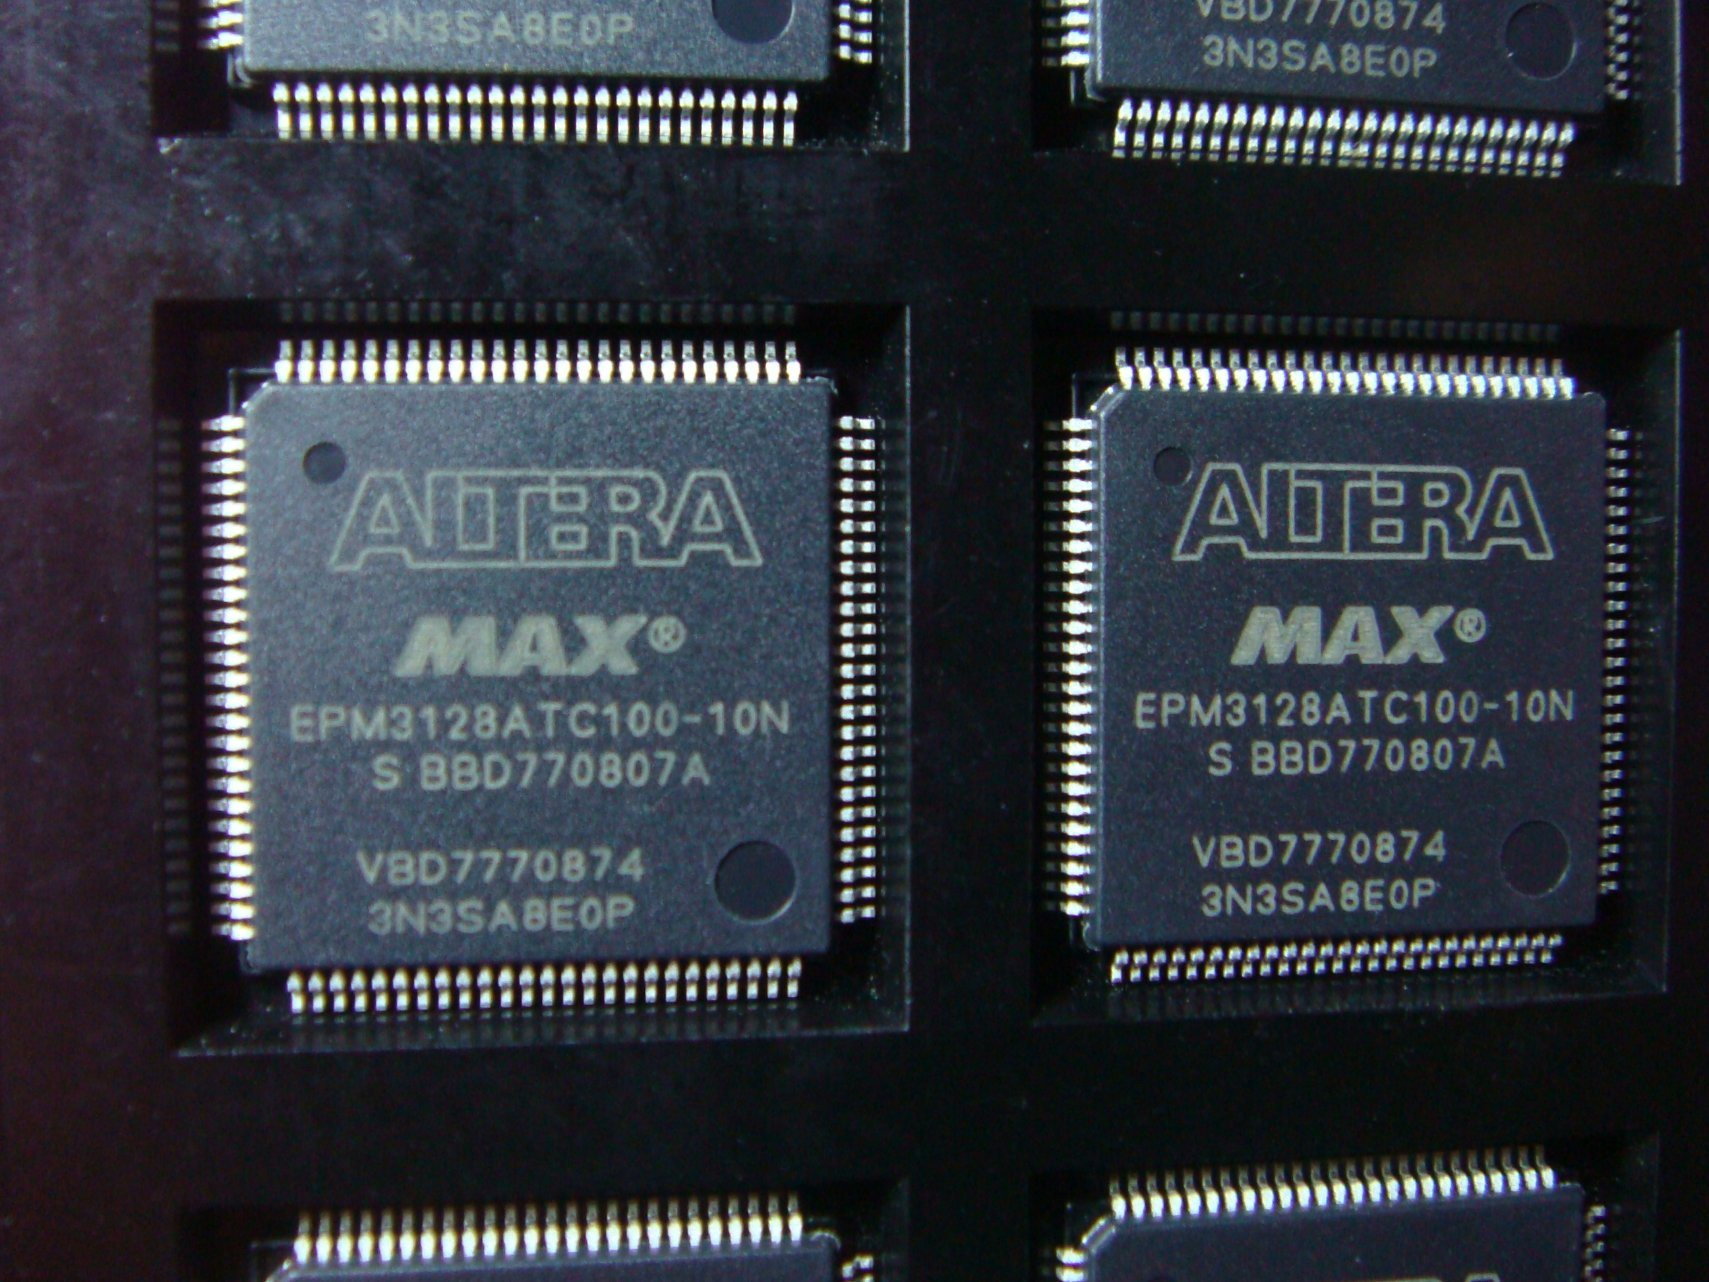 Epm3128atc100-10n Integrated Circuits Embedded IC Embedded - Cplds (Complex Programmable Logic Devices) > Altera